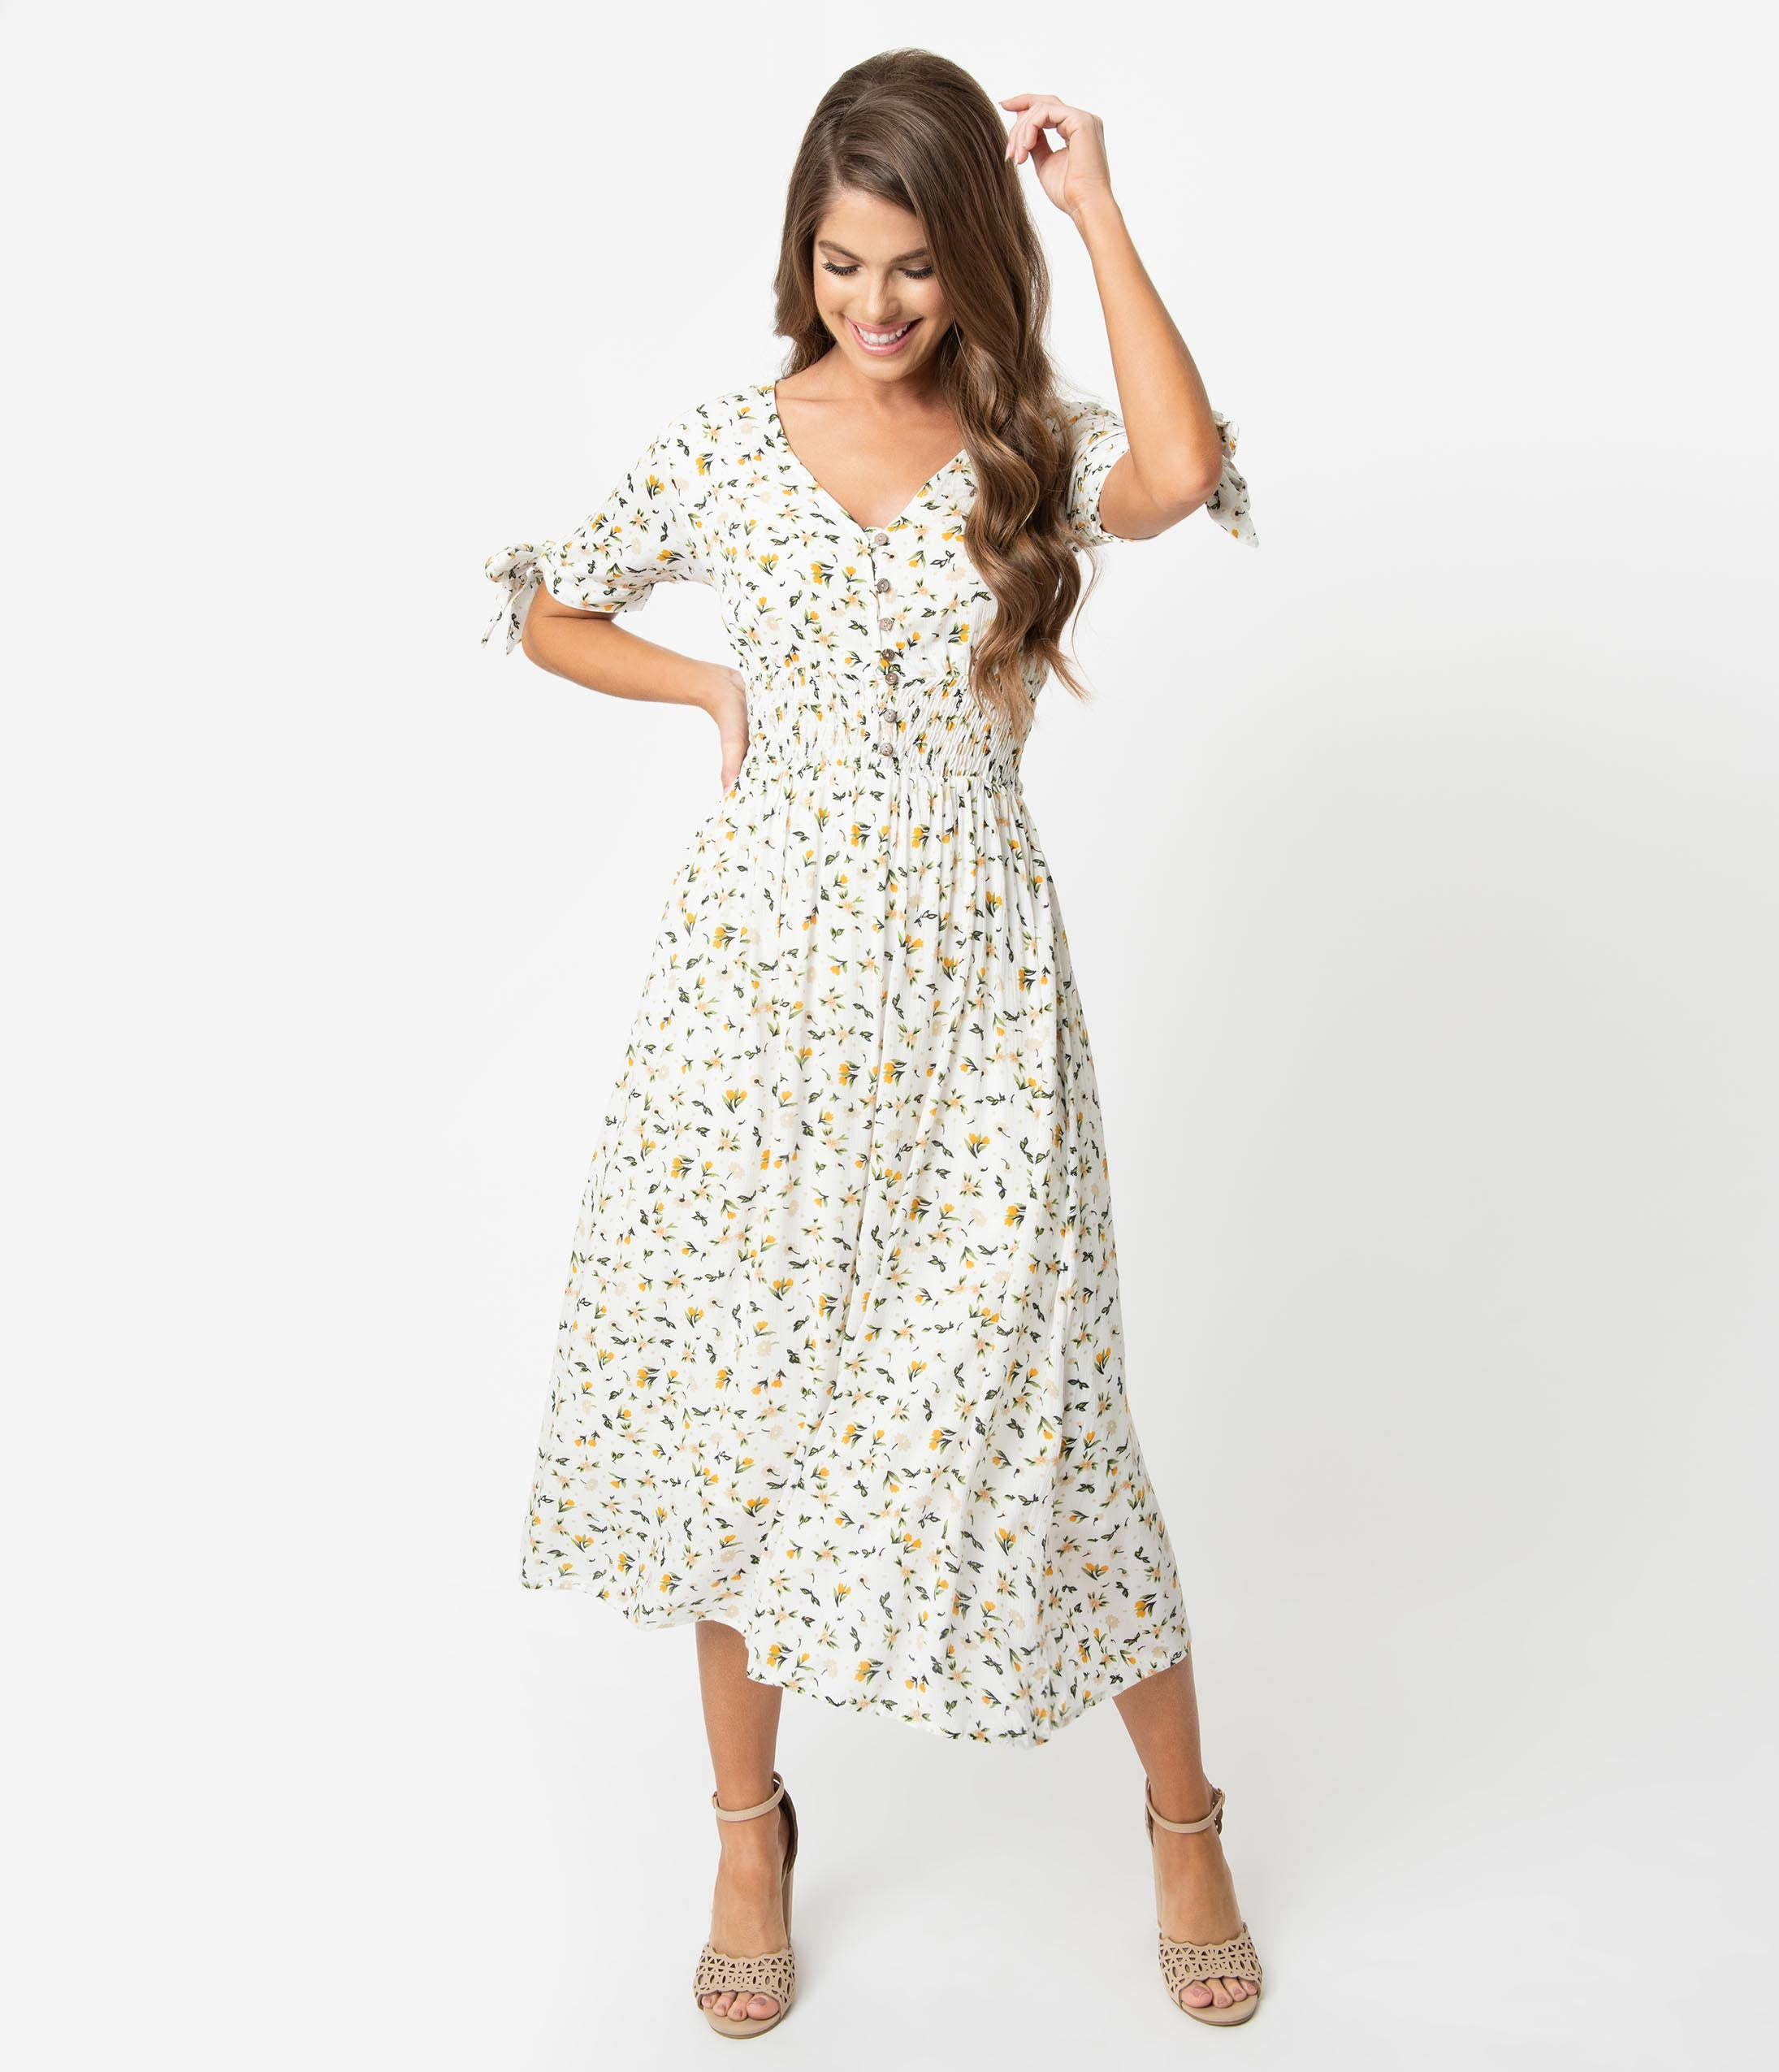 6b476934c 1970s Style Ivory & Yellow Delicate Floral Print Short Sleeve Midi Dress